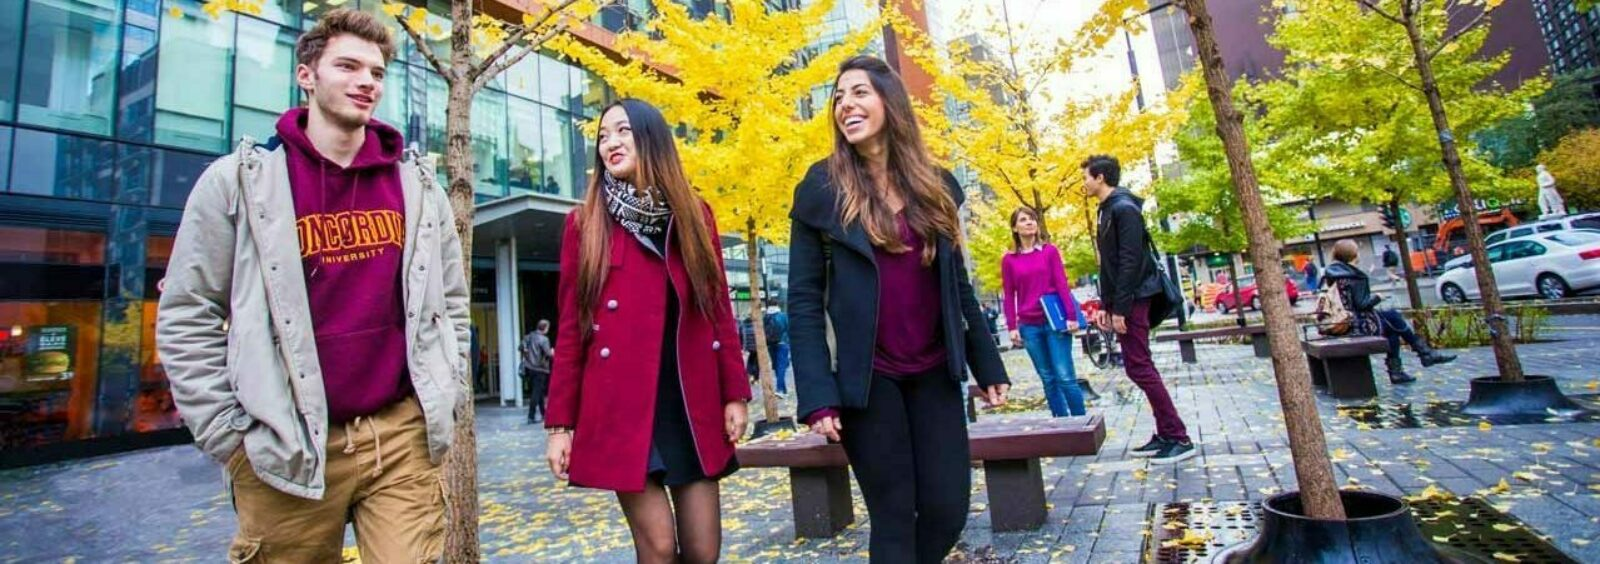 Concordia University students walking through the university's downtown campus in Montreal, Quebec.